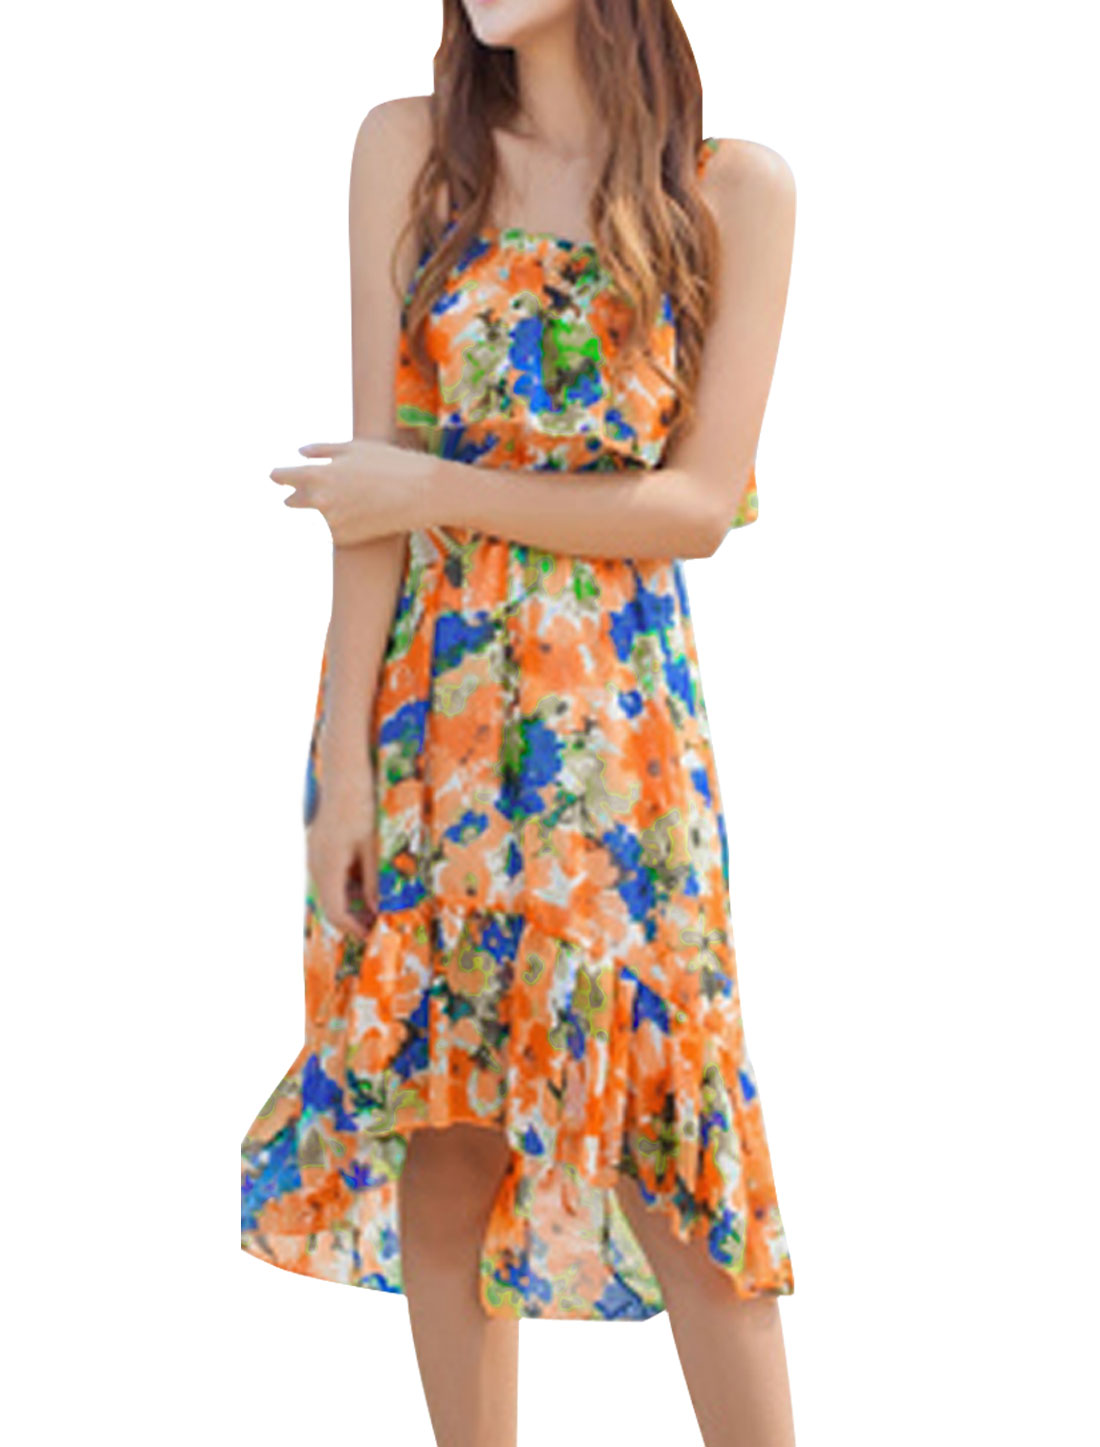 Women Chic Adjustable Spaghetti Straps Floral Prints Royalblue Orange Dress XS